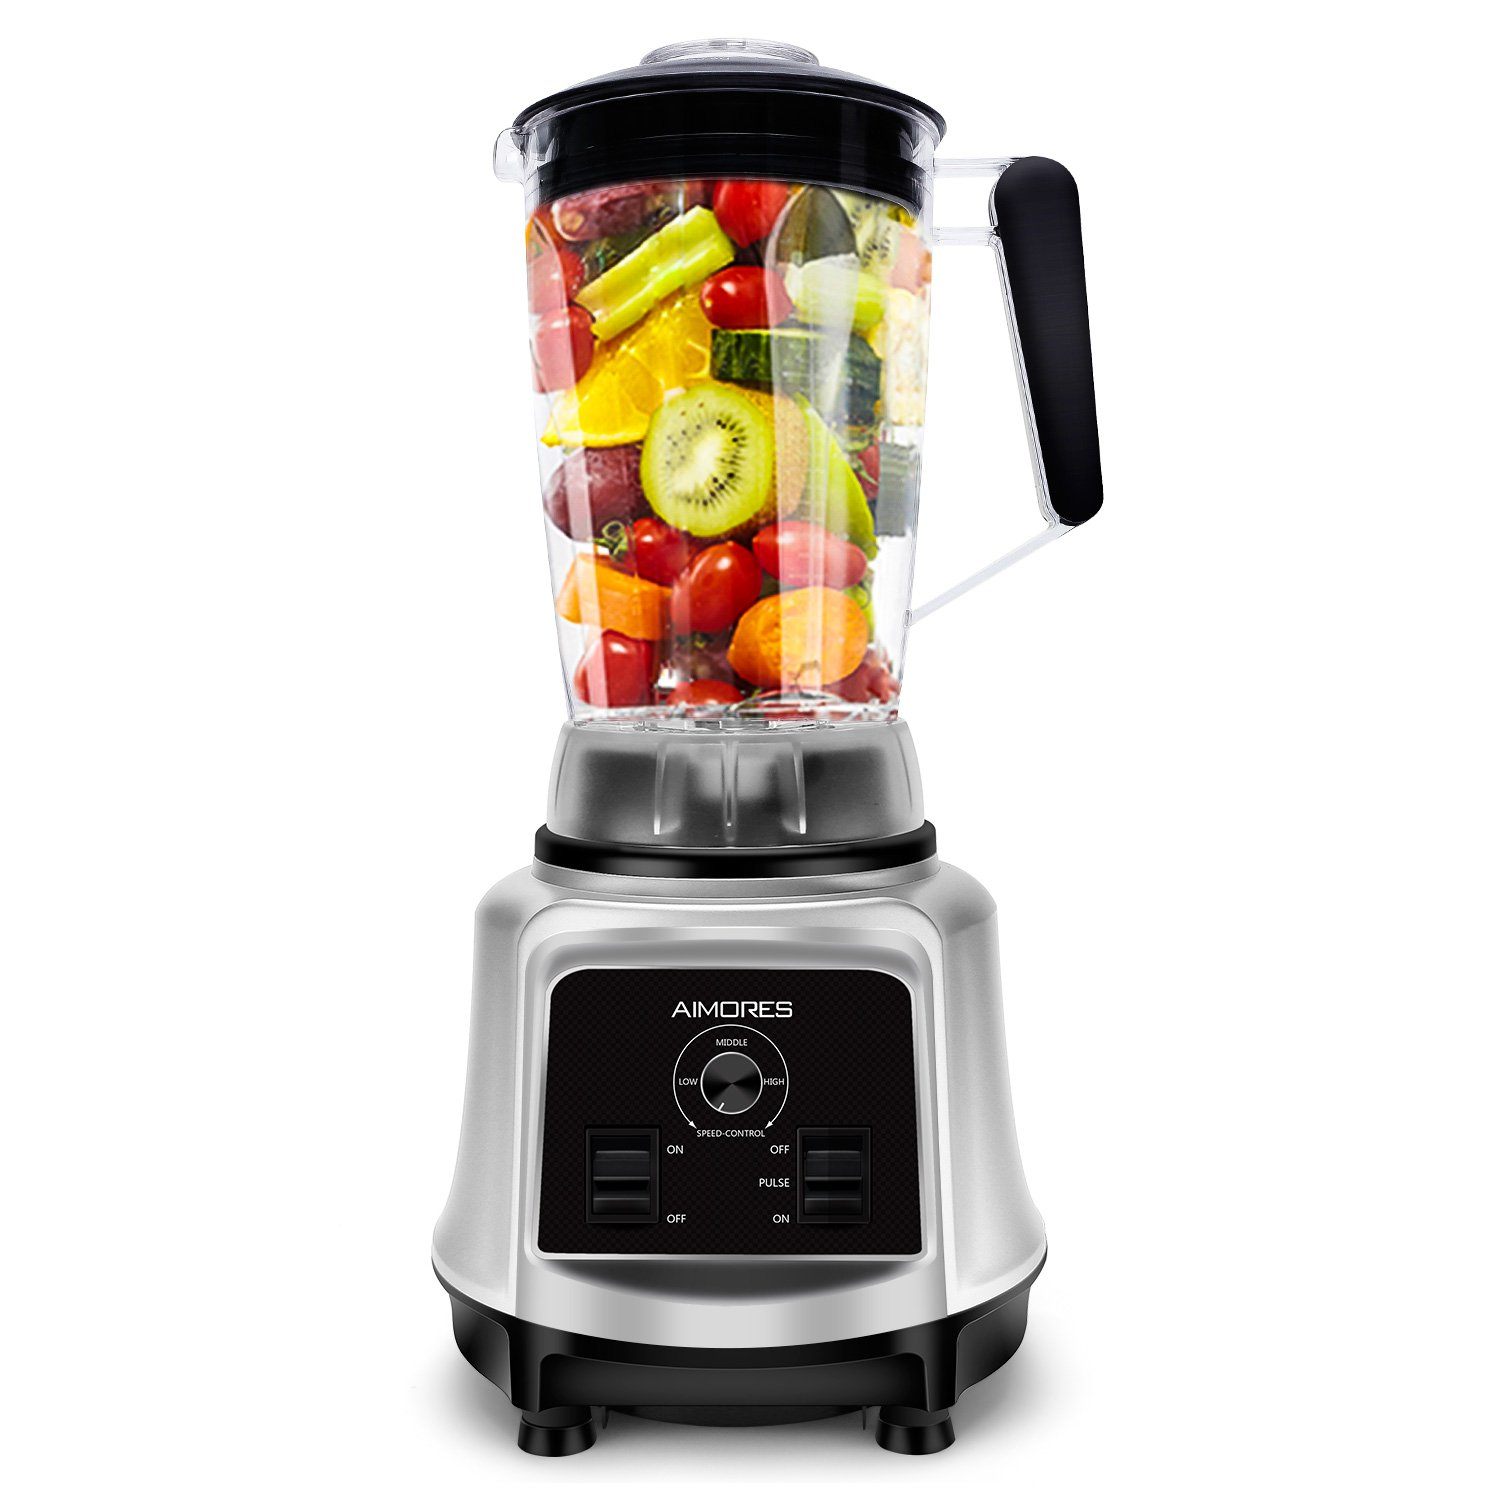 Commercial Blender AIMORES, Juicer for Smoothie,Juice,Ice Cream,Variable Speed Control,Optimized 6 Sharp Blades, 75oz Big Tritan Pitcher,with Recipe | ETL & FDA Certified (Silver) by ISUN